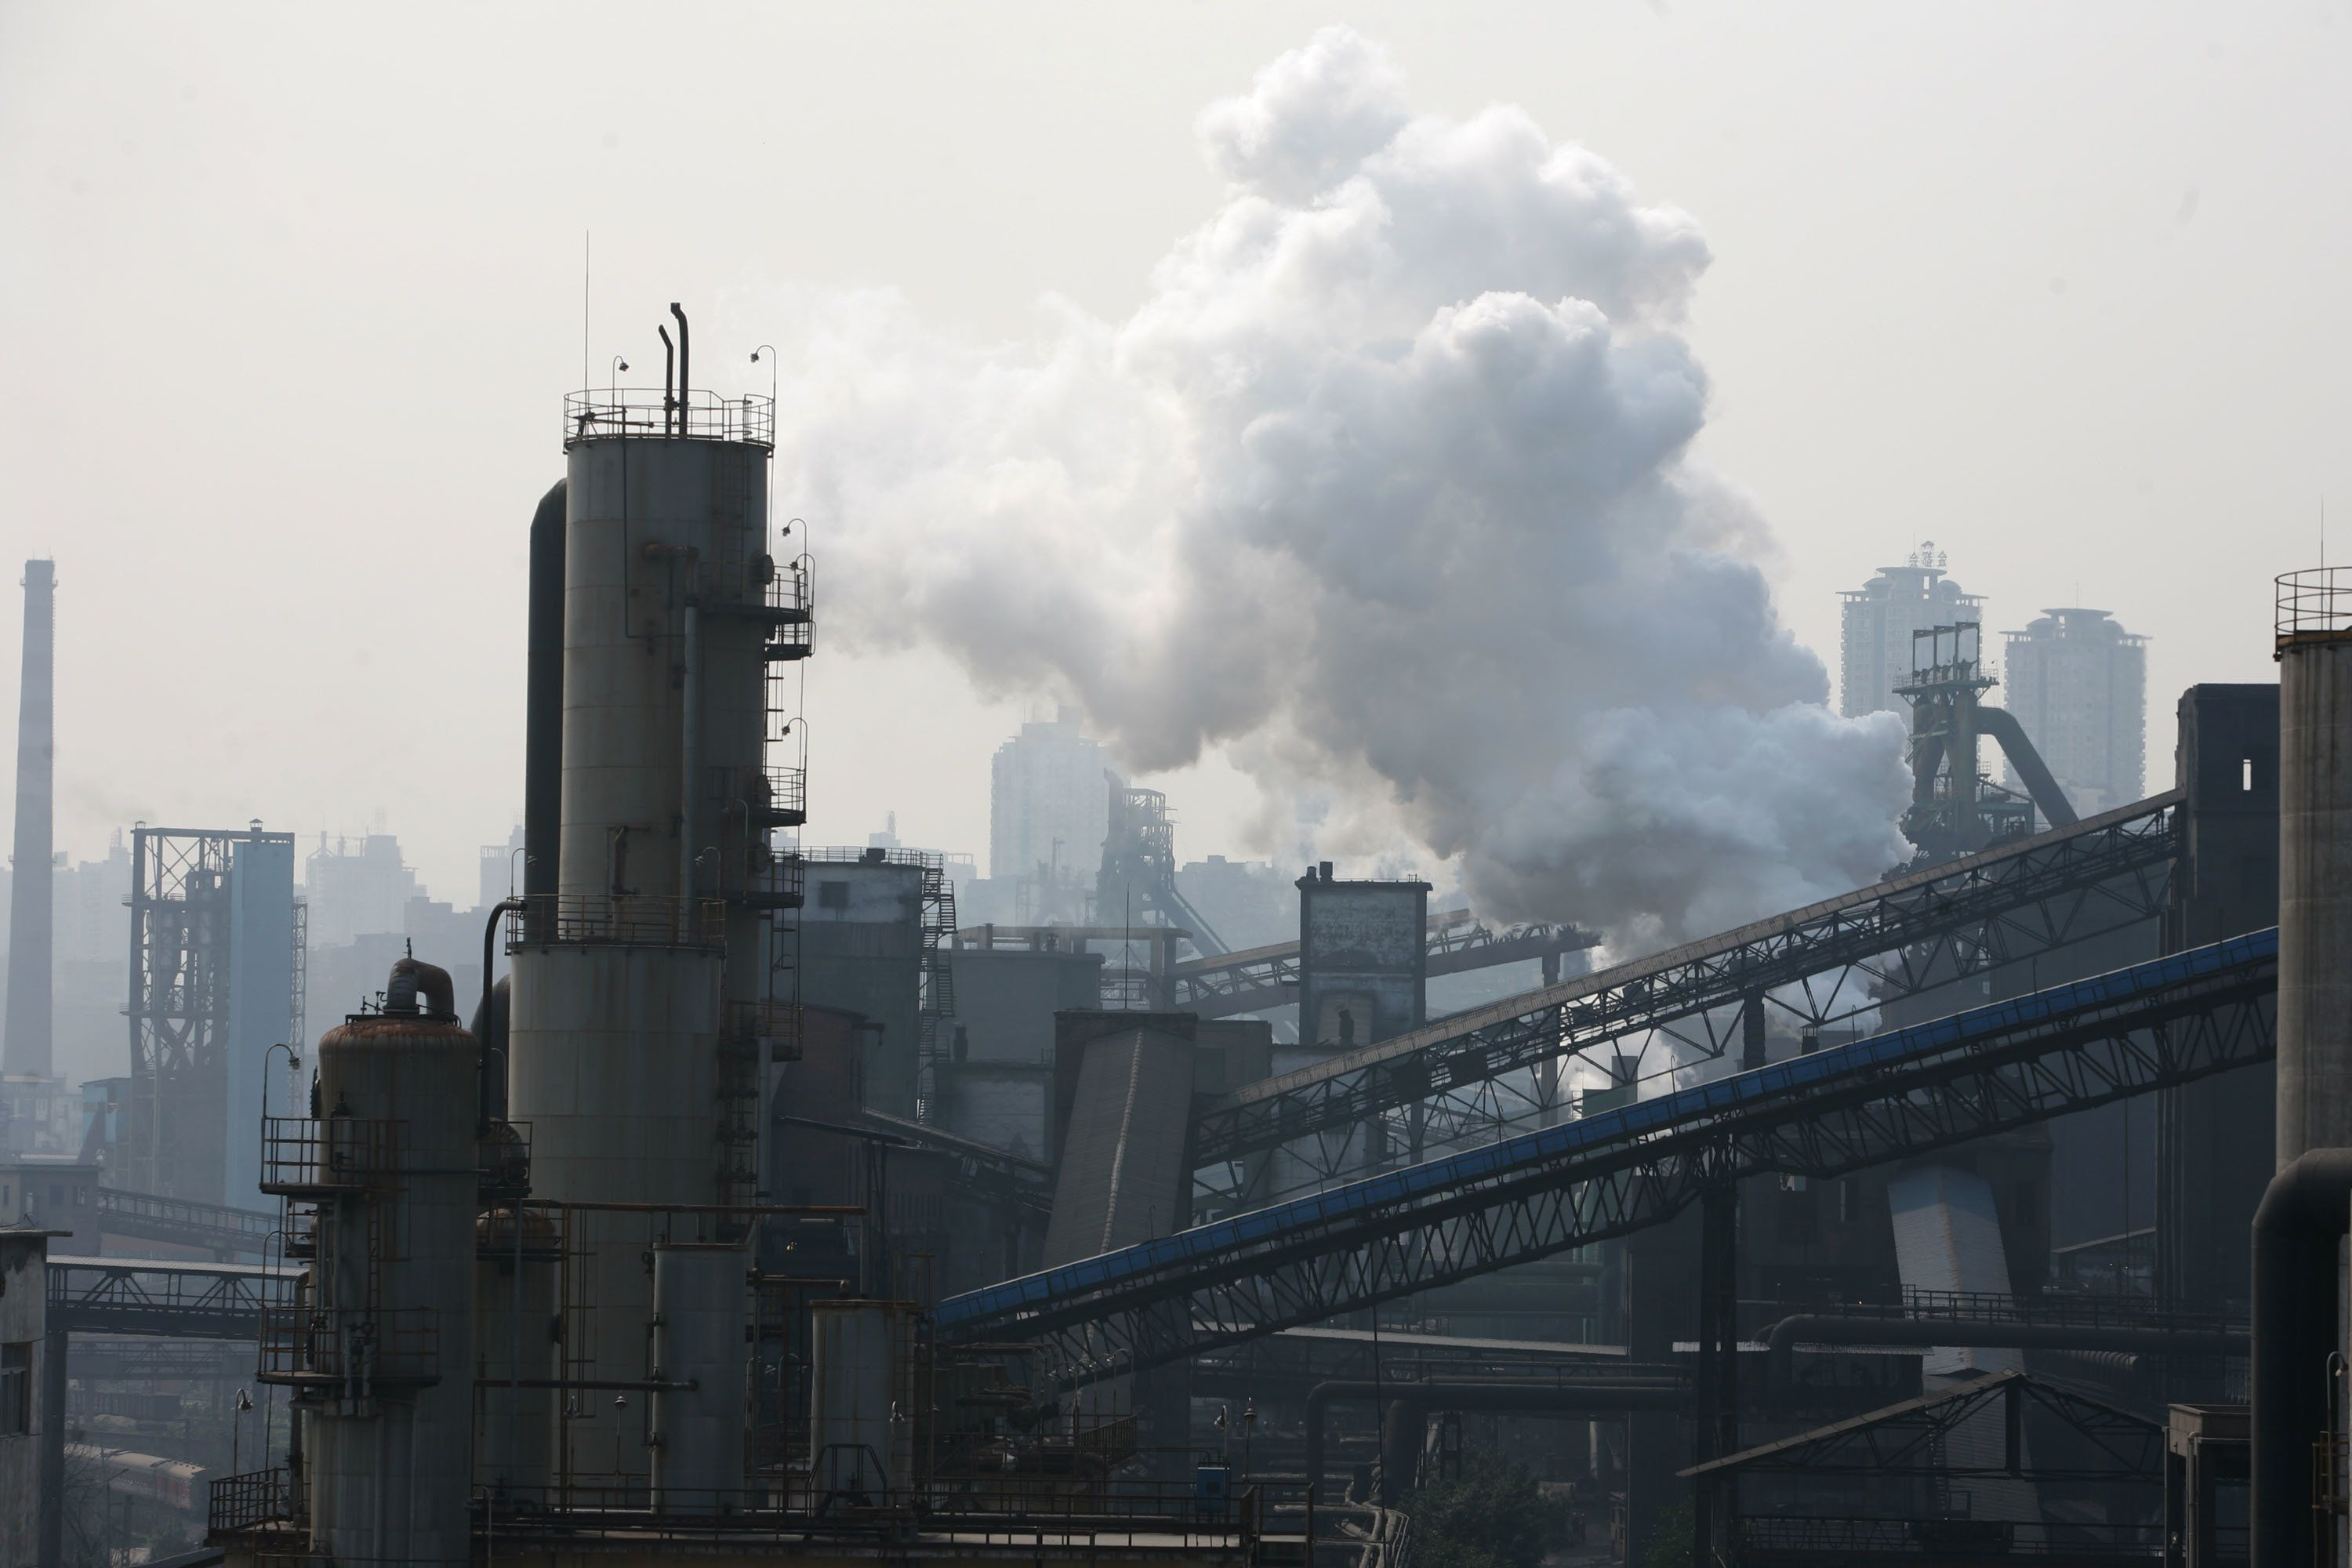 CHONGQING, CHINA - MARCH 1: (CHINA OUT) Smoke billows from steel slags at a plant of Chongqing Iron and Steel (Group) Co., Ltd. on March 1, 2007 in Chongqing Municipality, China. Chongqing Steel will relocate from the city's central to its suburbs by 2012 in line with a government strategy to move manufacturing out of the major cities, according to state media. The relocation program, to start in this May, is environmentally motivated as 50 per cent of city's pollution comes from the Chongqing Steel plants. This move is costing 24 billion yuan (about US$ 3.1 billion). (Photo by China Photos/Getty Images)